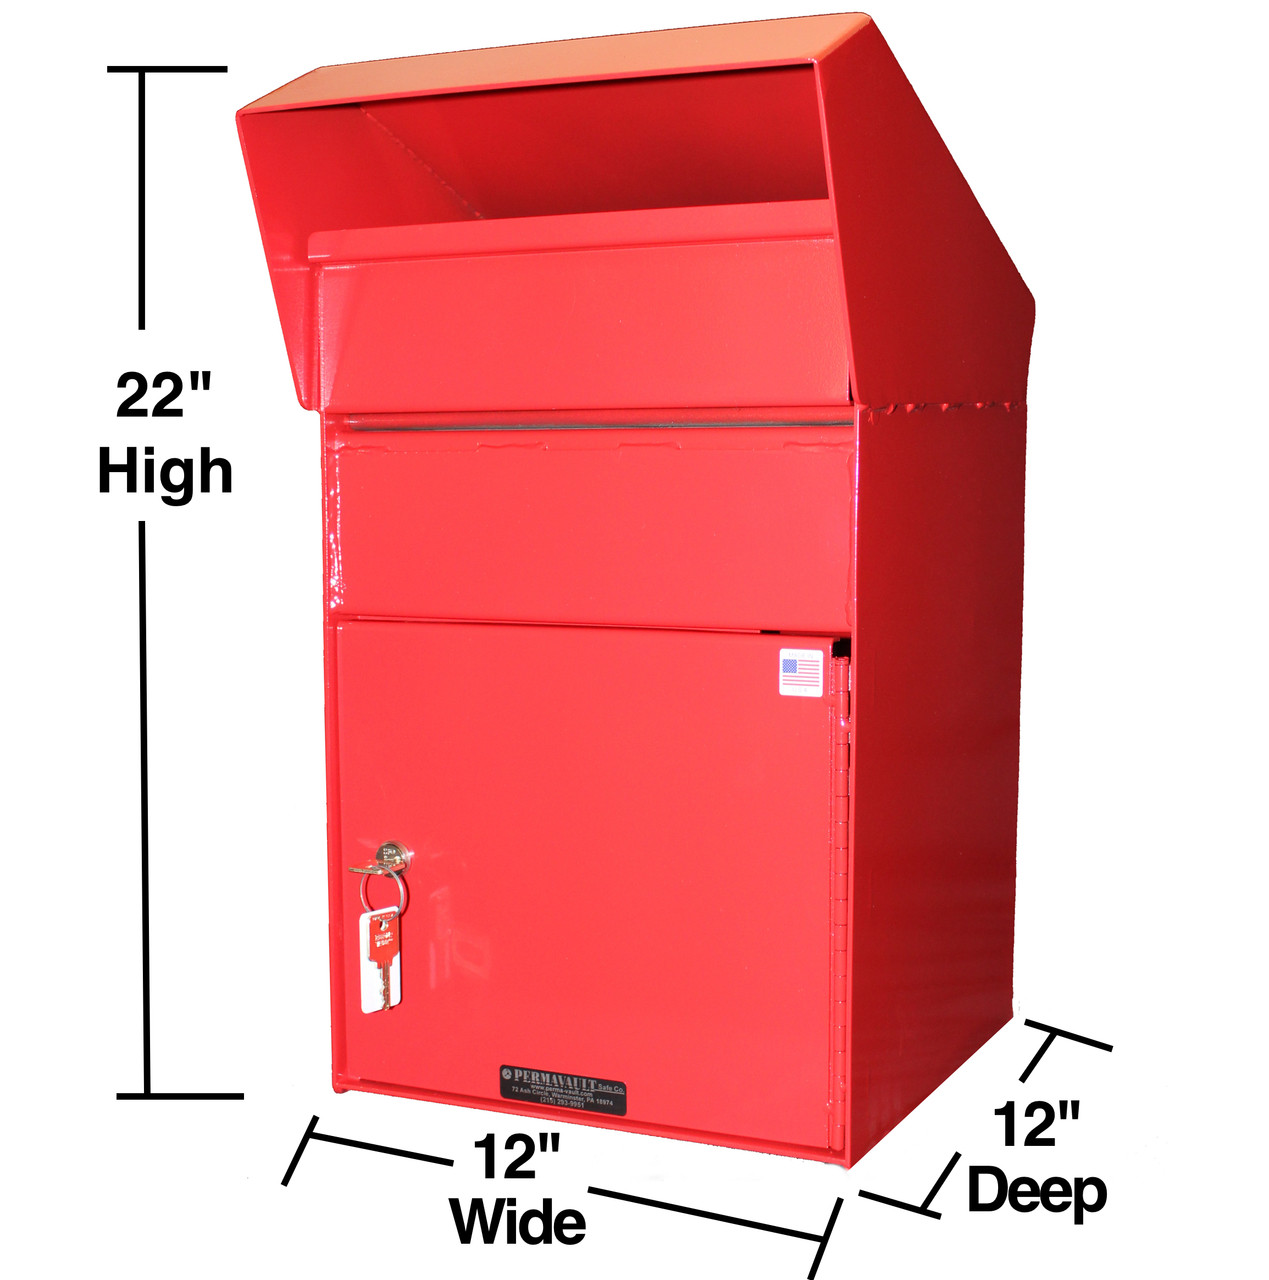 Extra Large Outdoor Secure Payment Drop Box Size